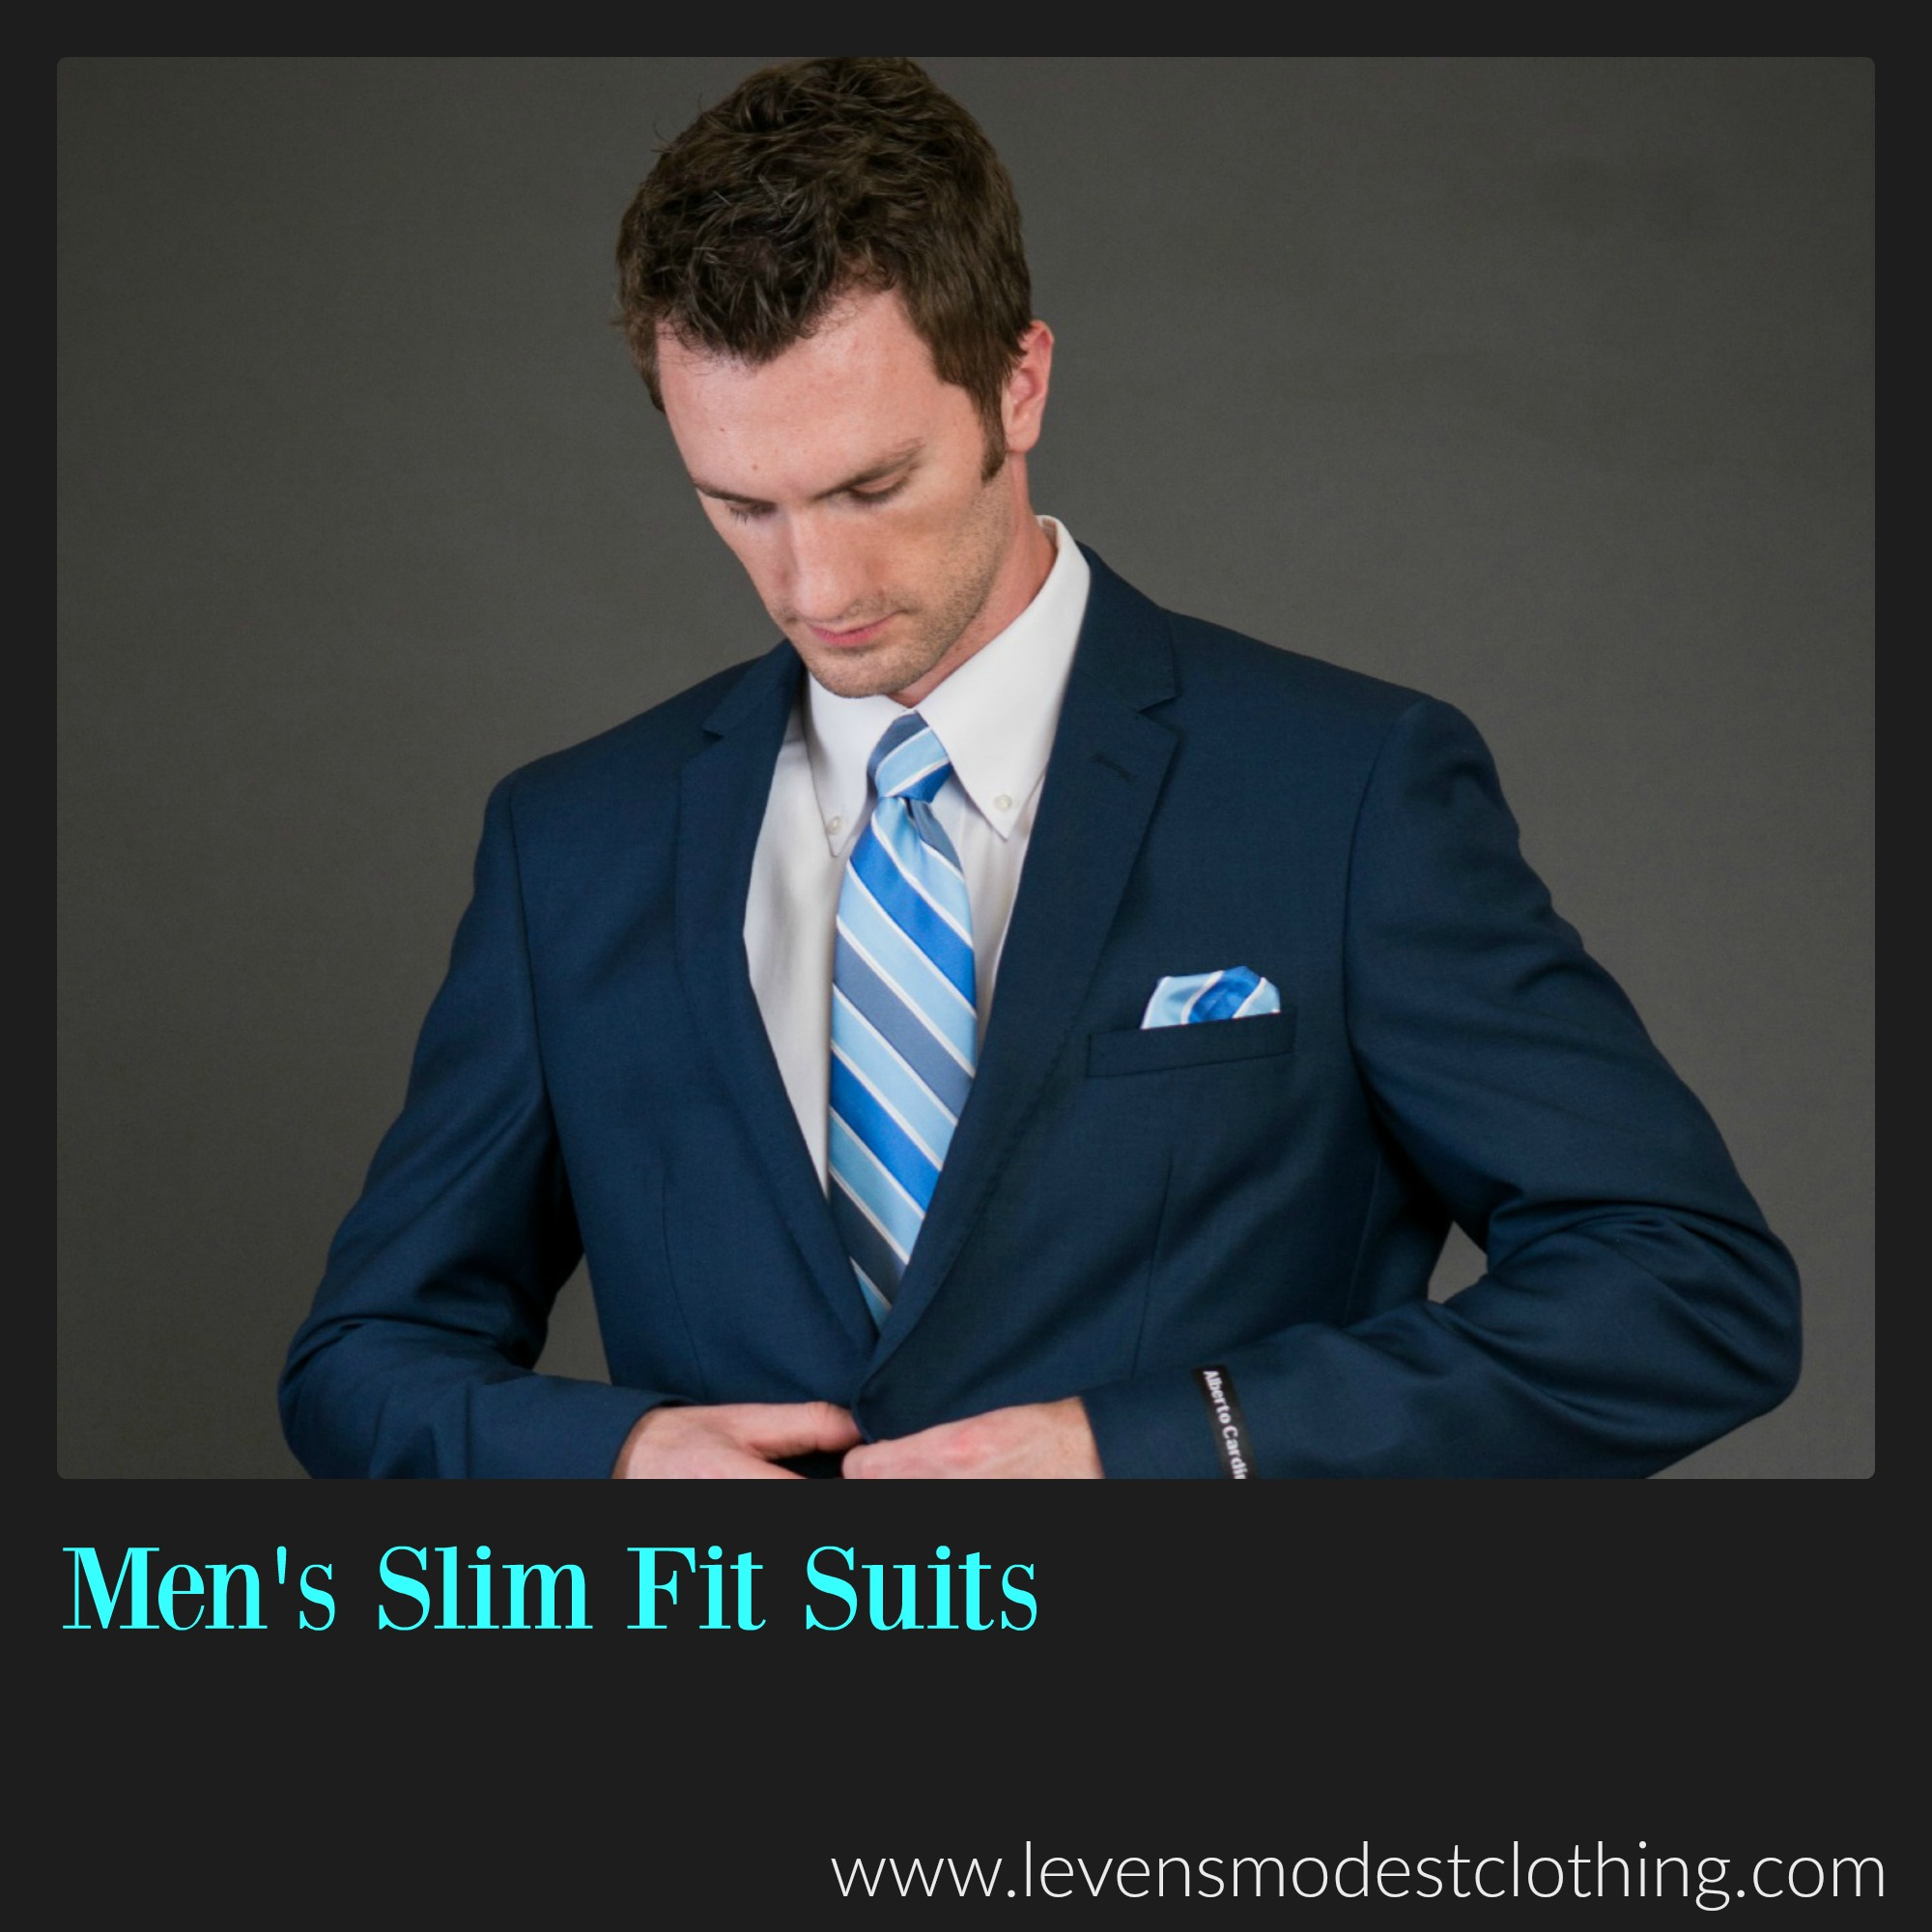 Slim Fit Suits.